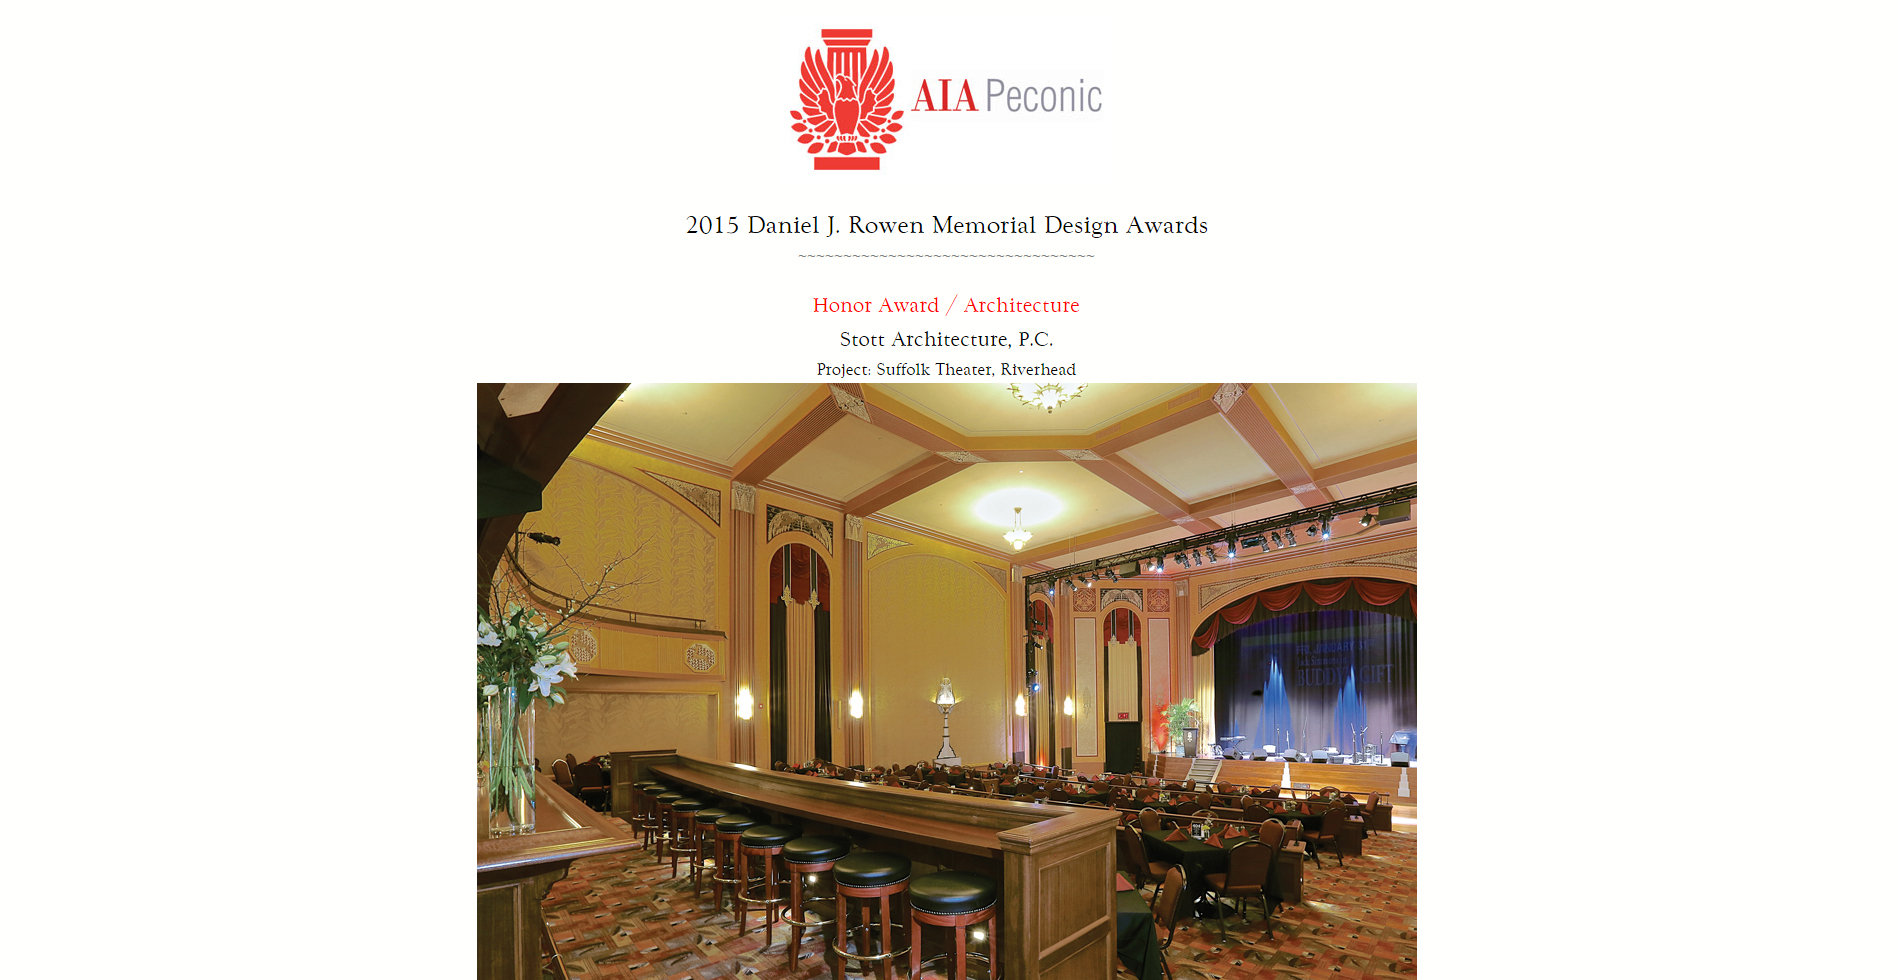 2015 Daniel J. Rowen Memorial Design Awards AIA Peconic (January 2015)